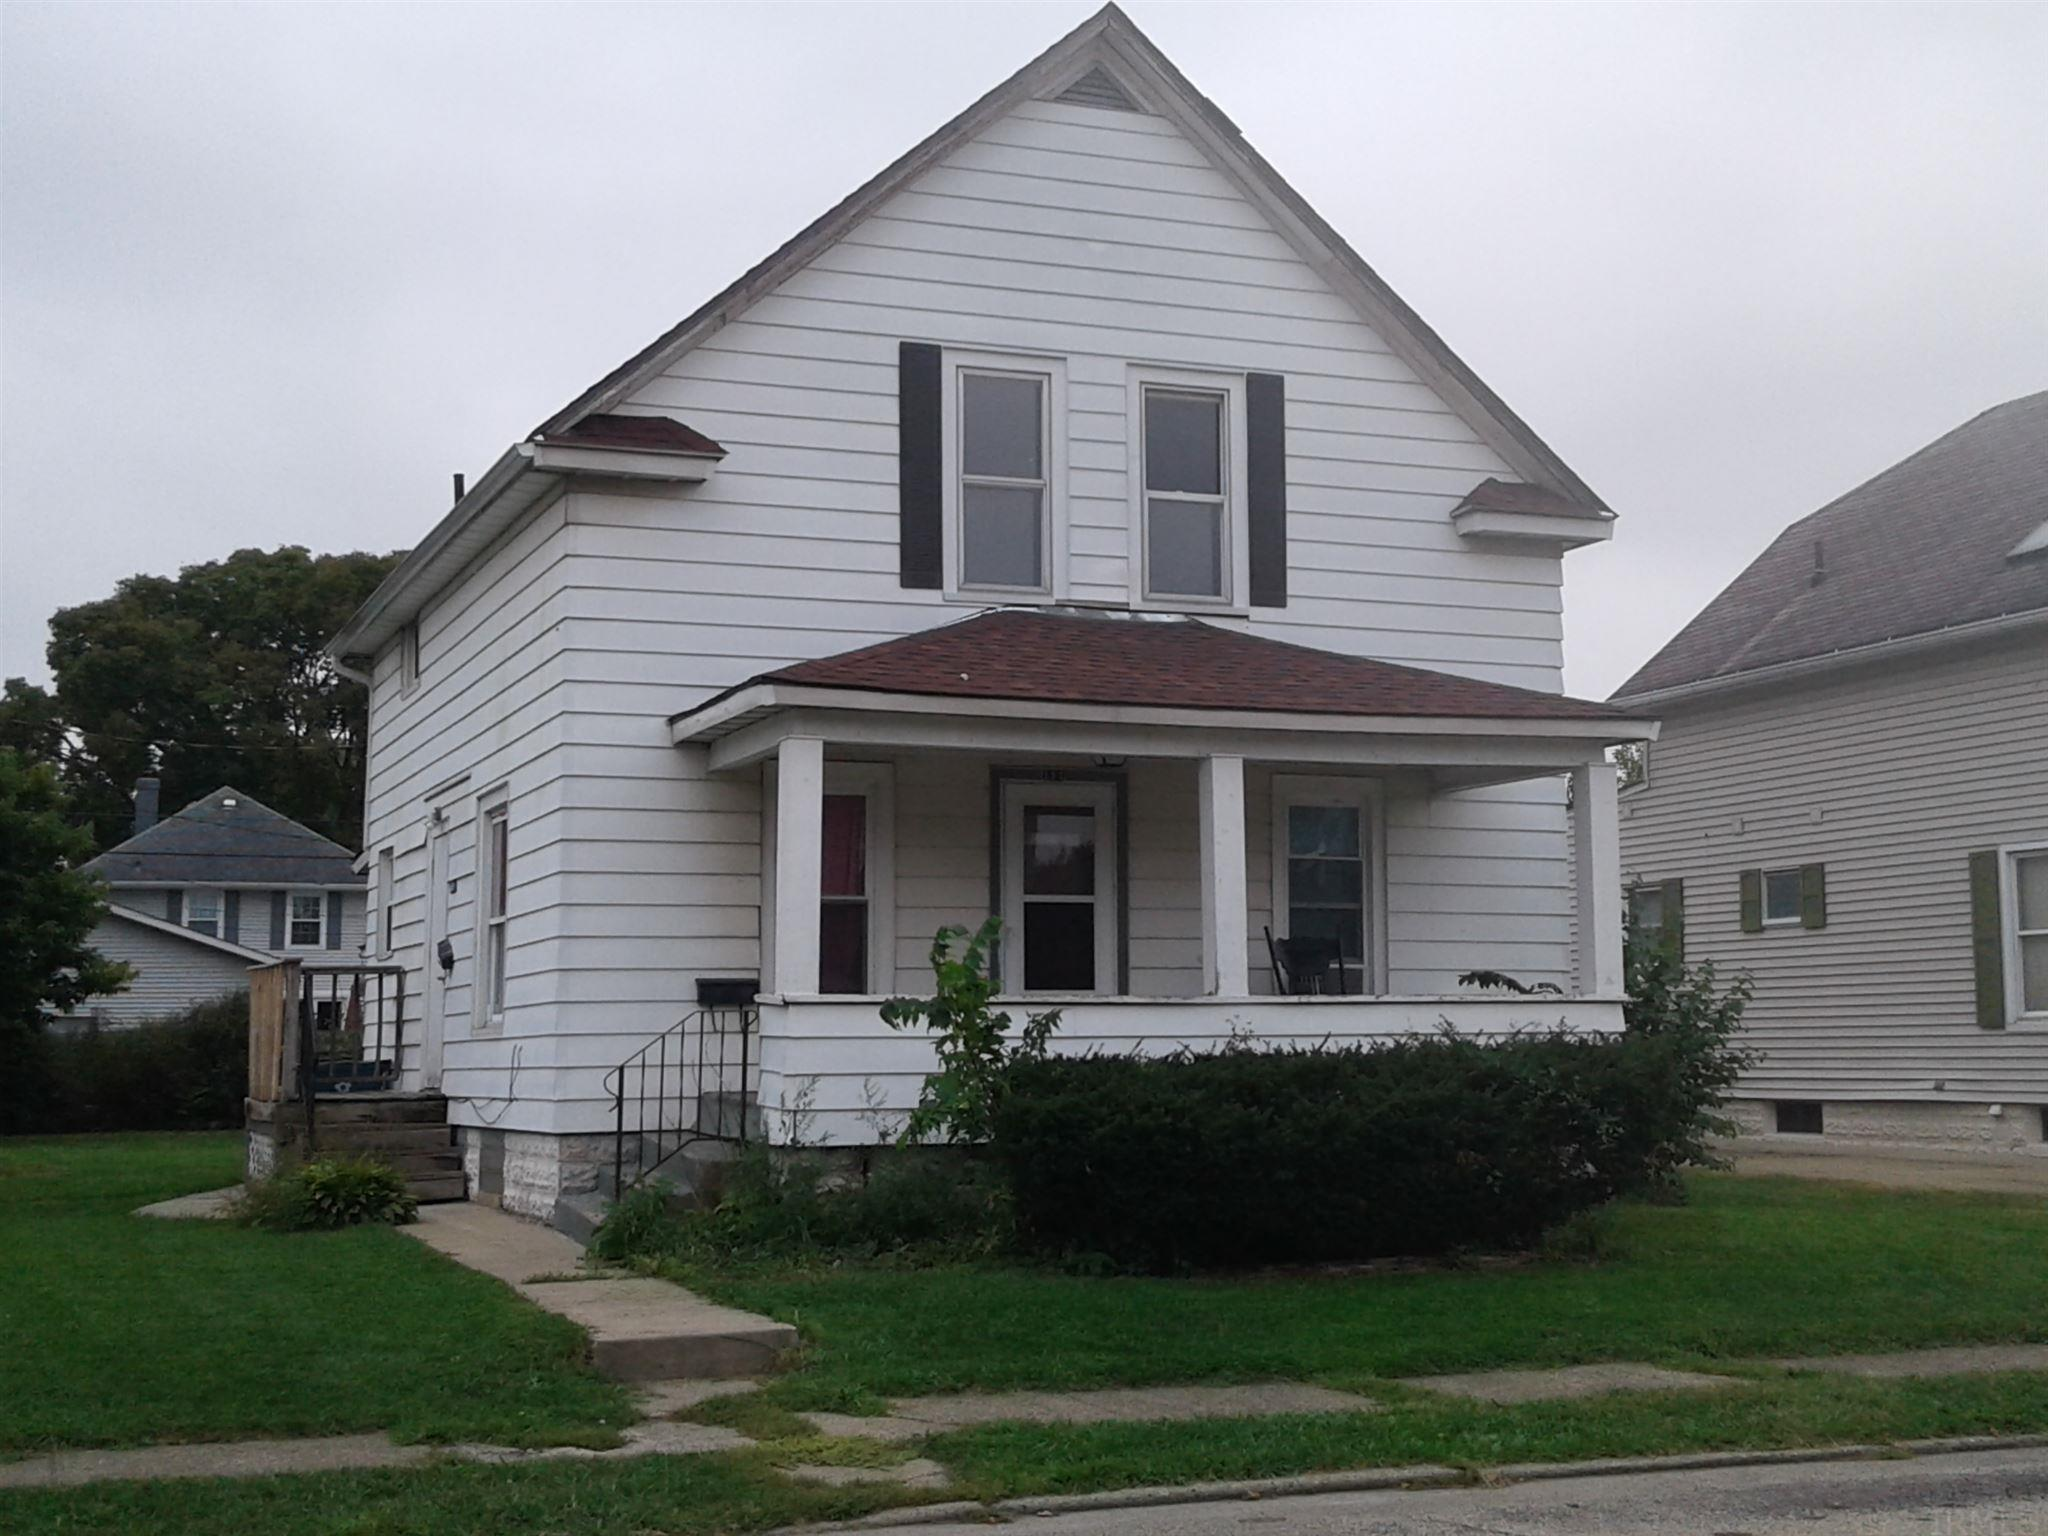 111 W 10th Mishawaka, IN 46544